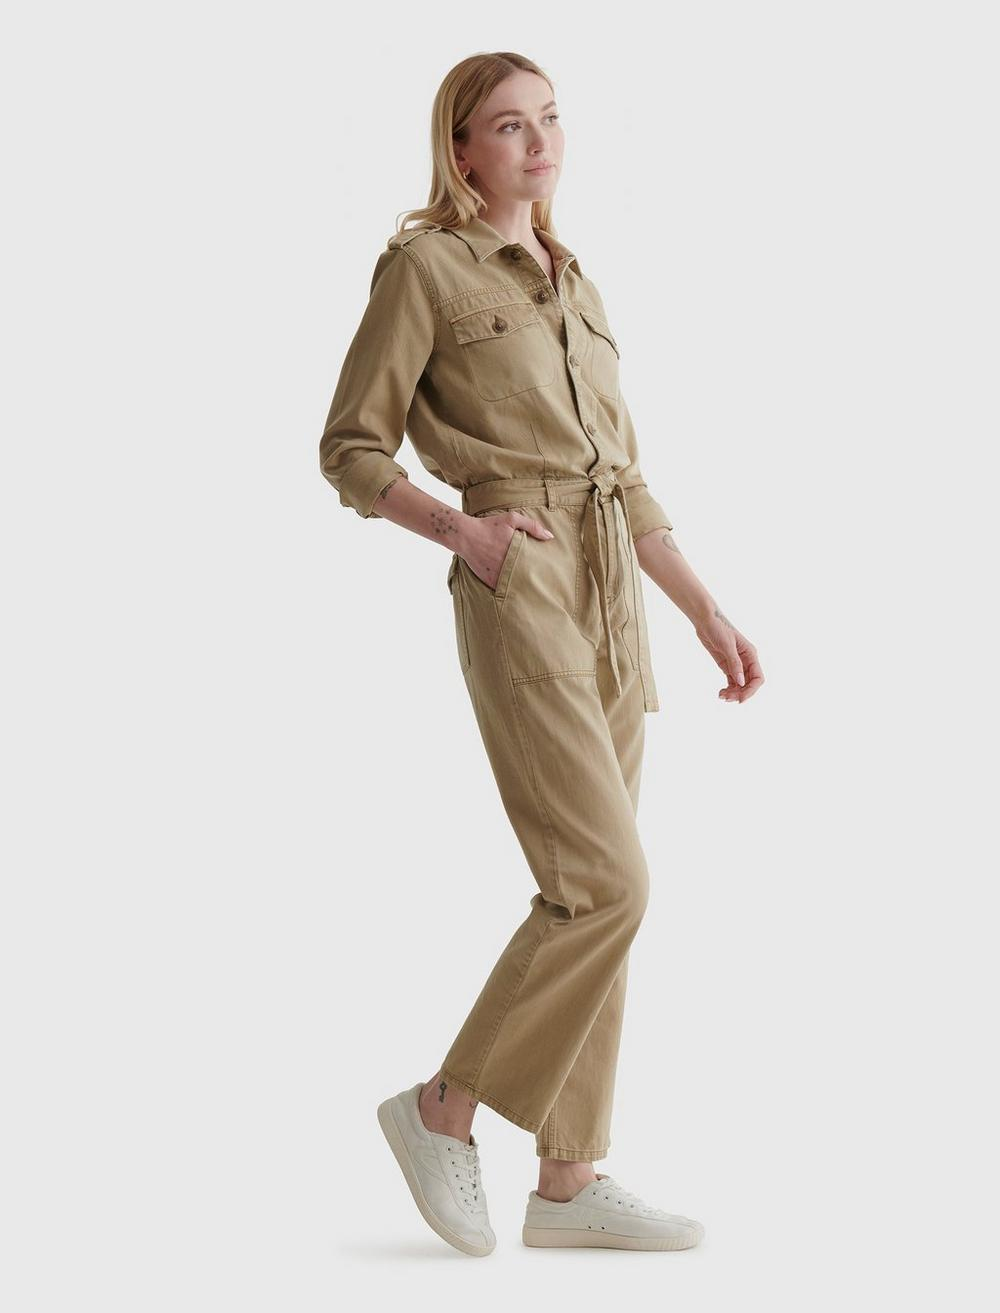 OUT OF TOWN JUMPSUIT, image 2